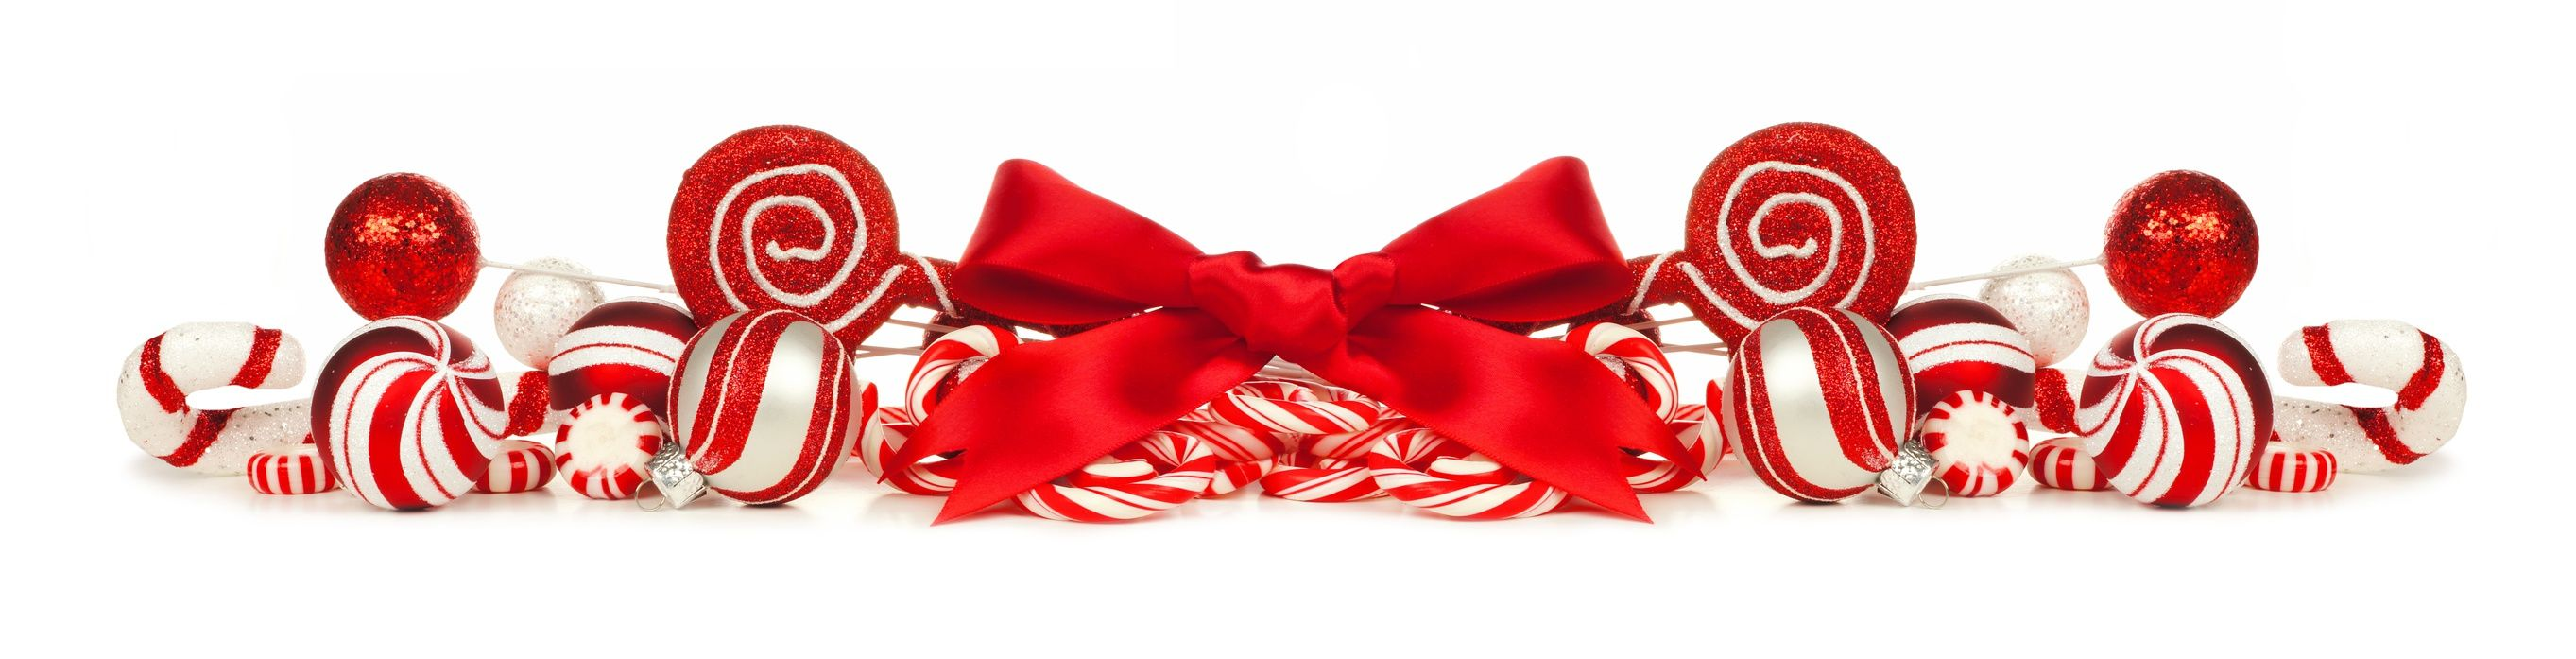 Christmas border of red and white baubles, bows and candy canes isolated on a white background